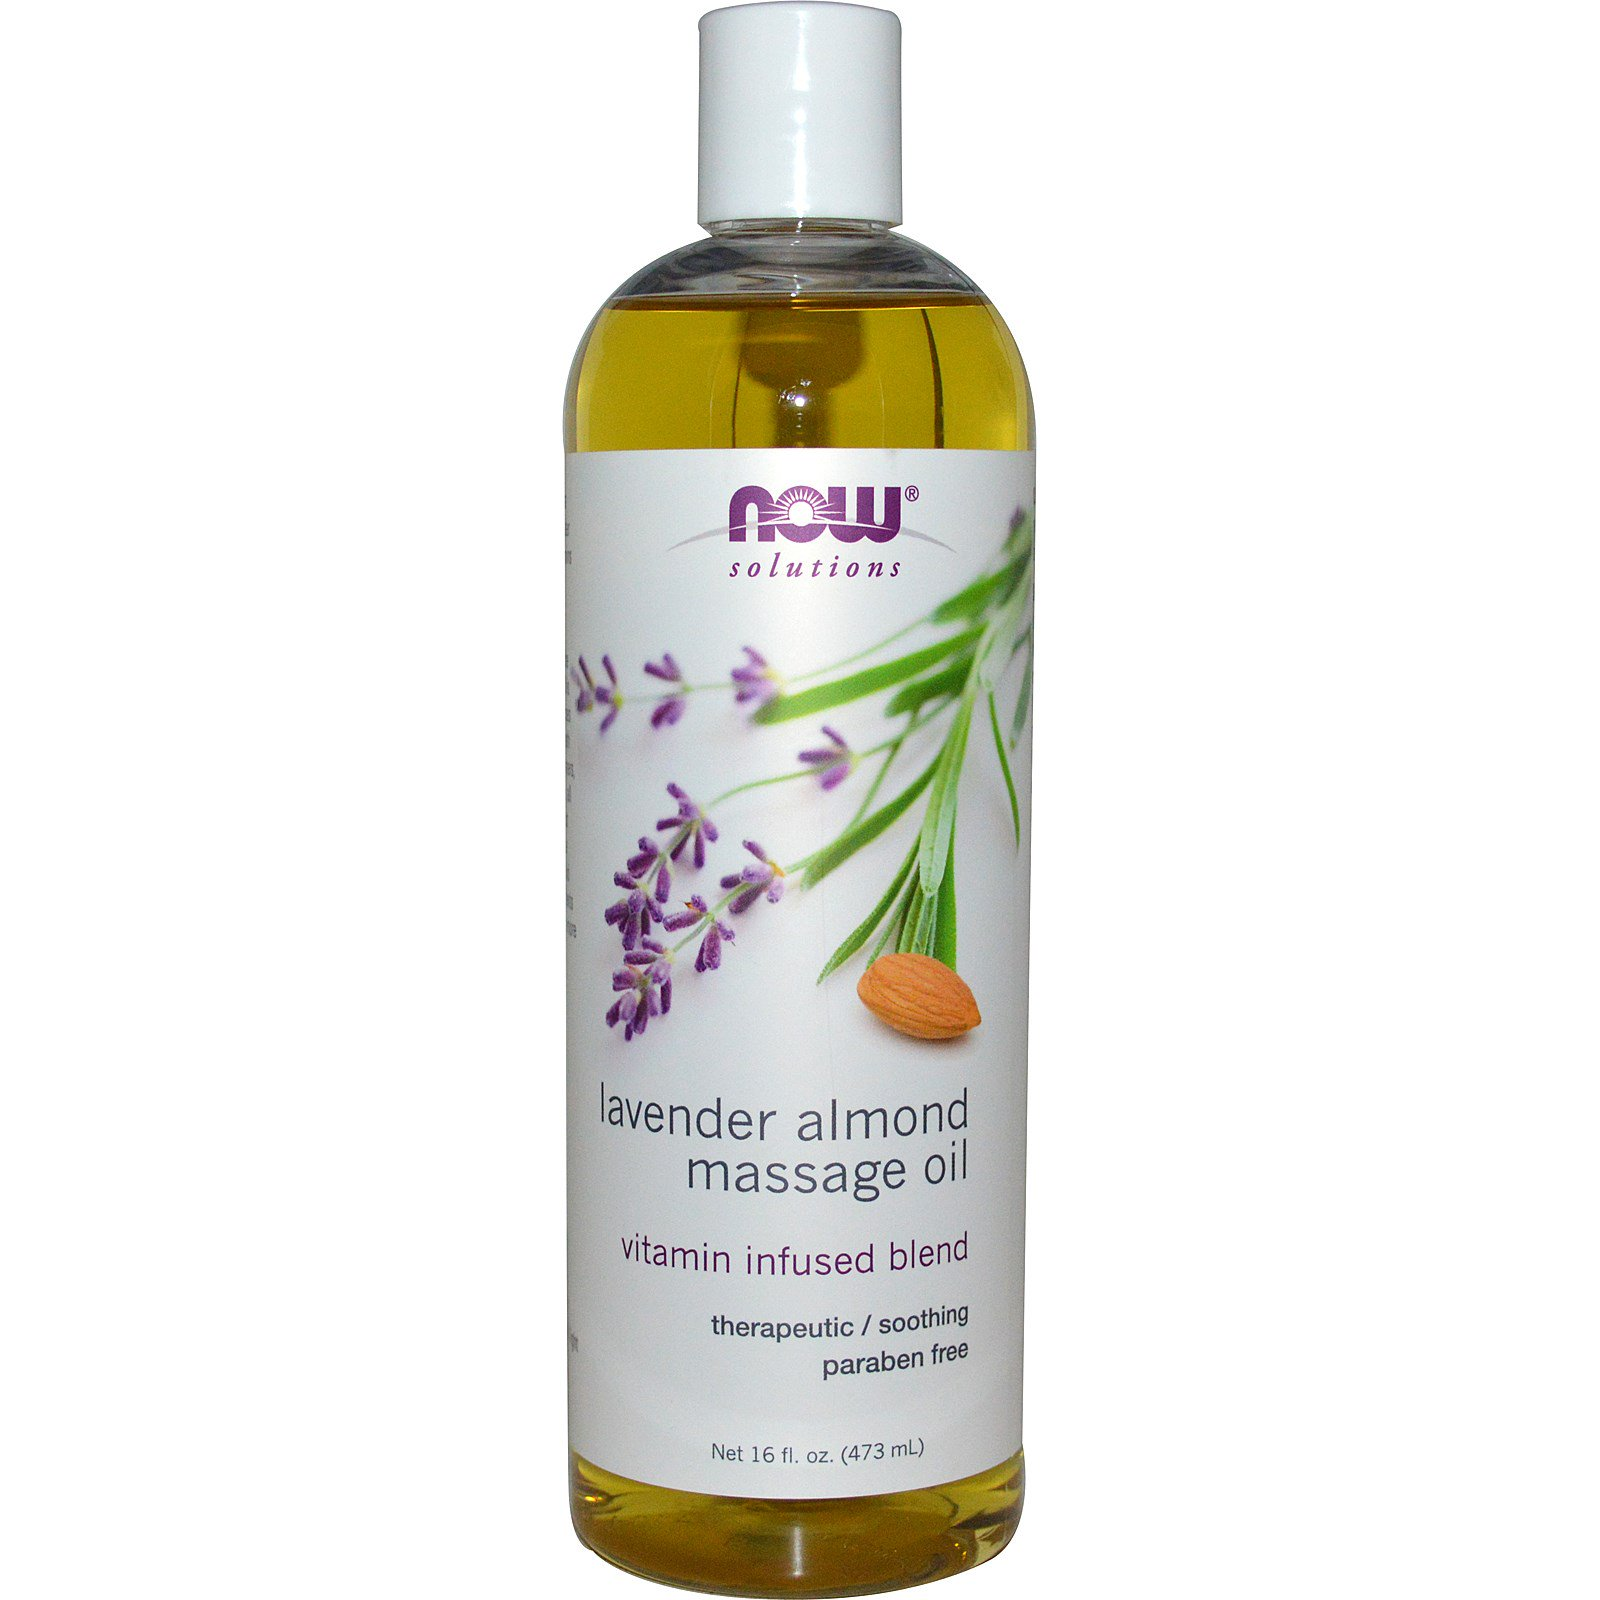 Massageolja Lavendel och mandel 473ml